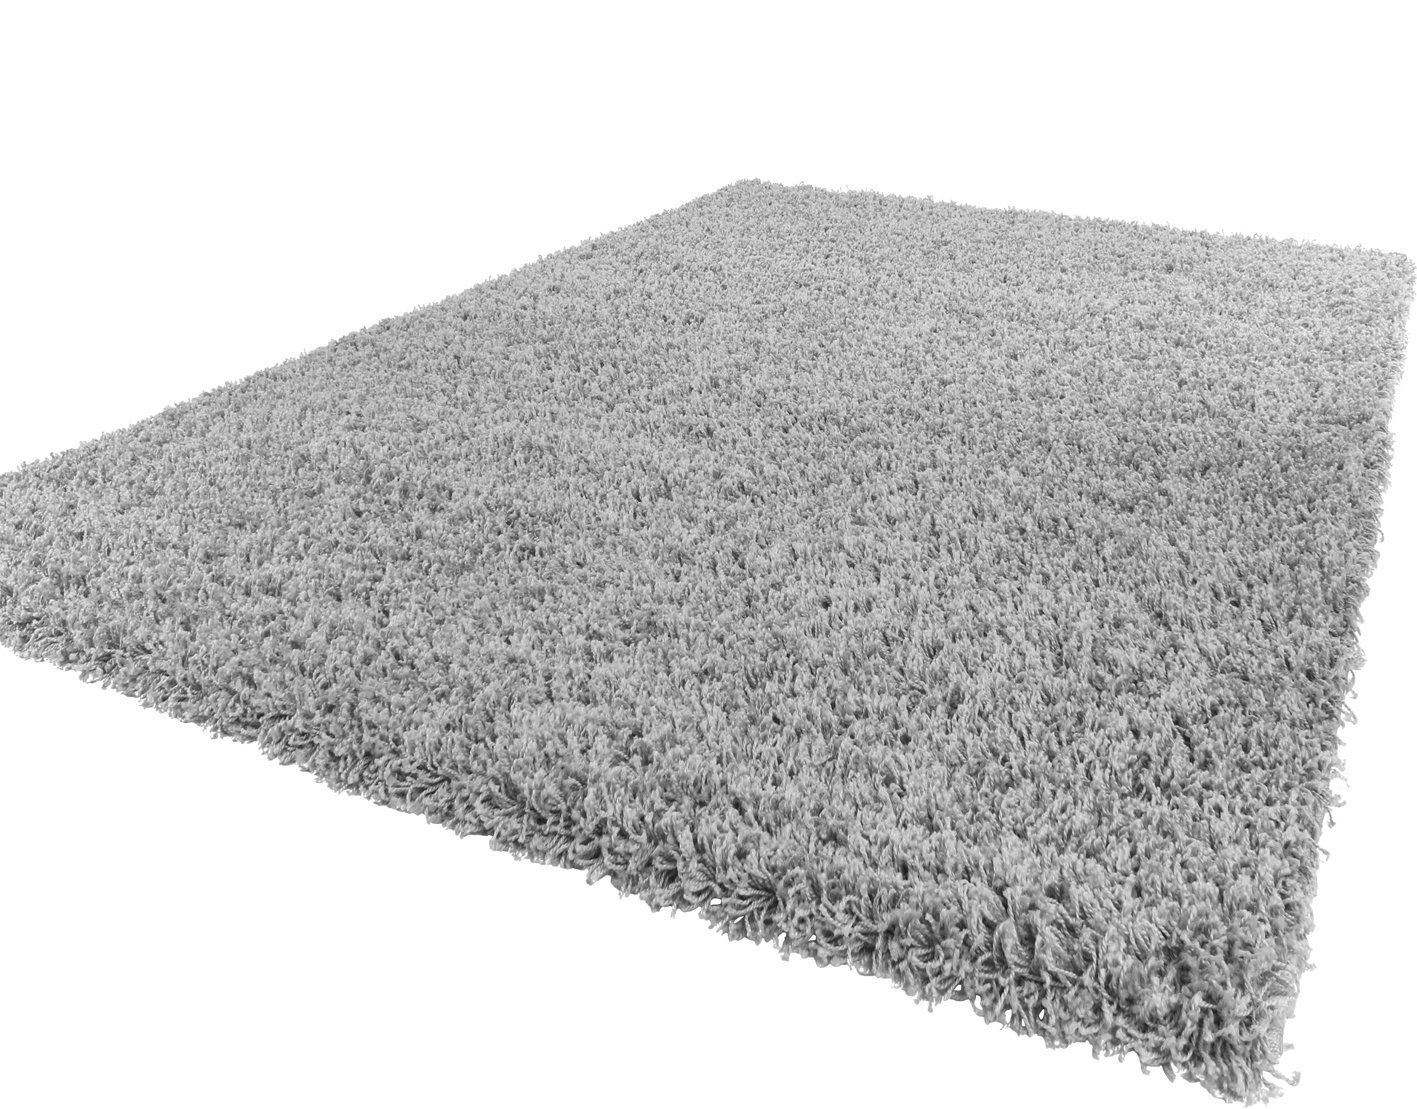 Lord of Rugs Soft Shaggy Silver Grey Modern Thick Rug 8 60 x 100 cm (2' x 3'3'')